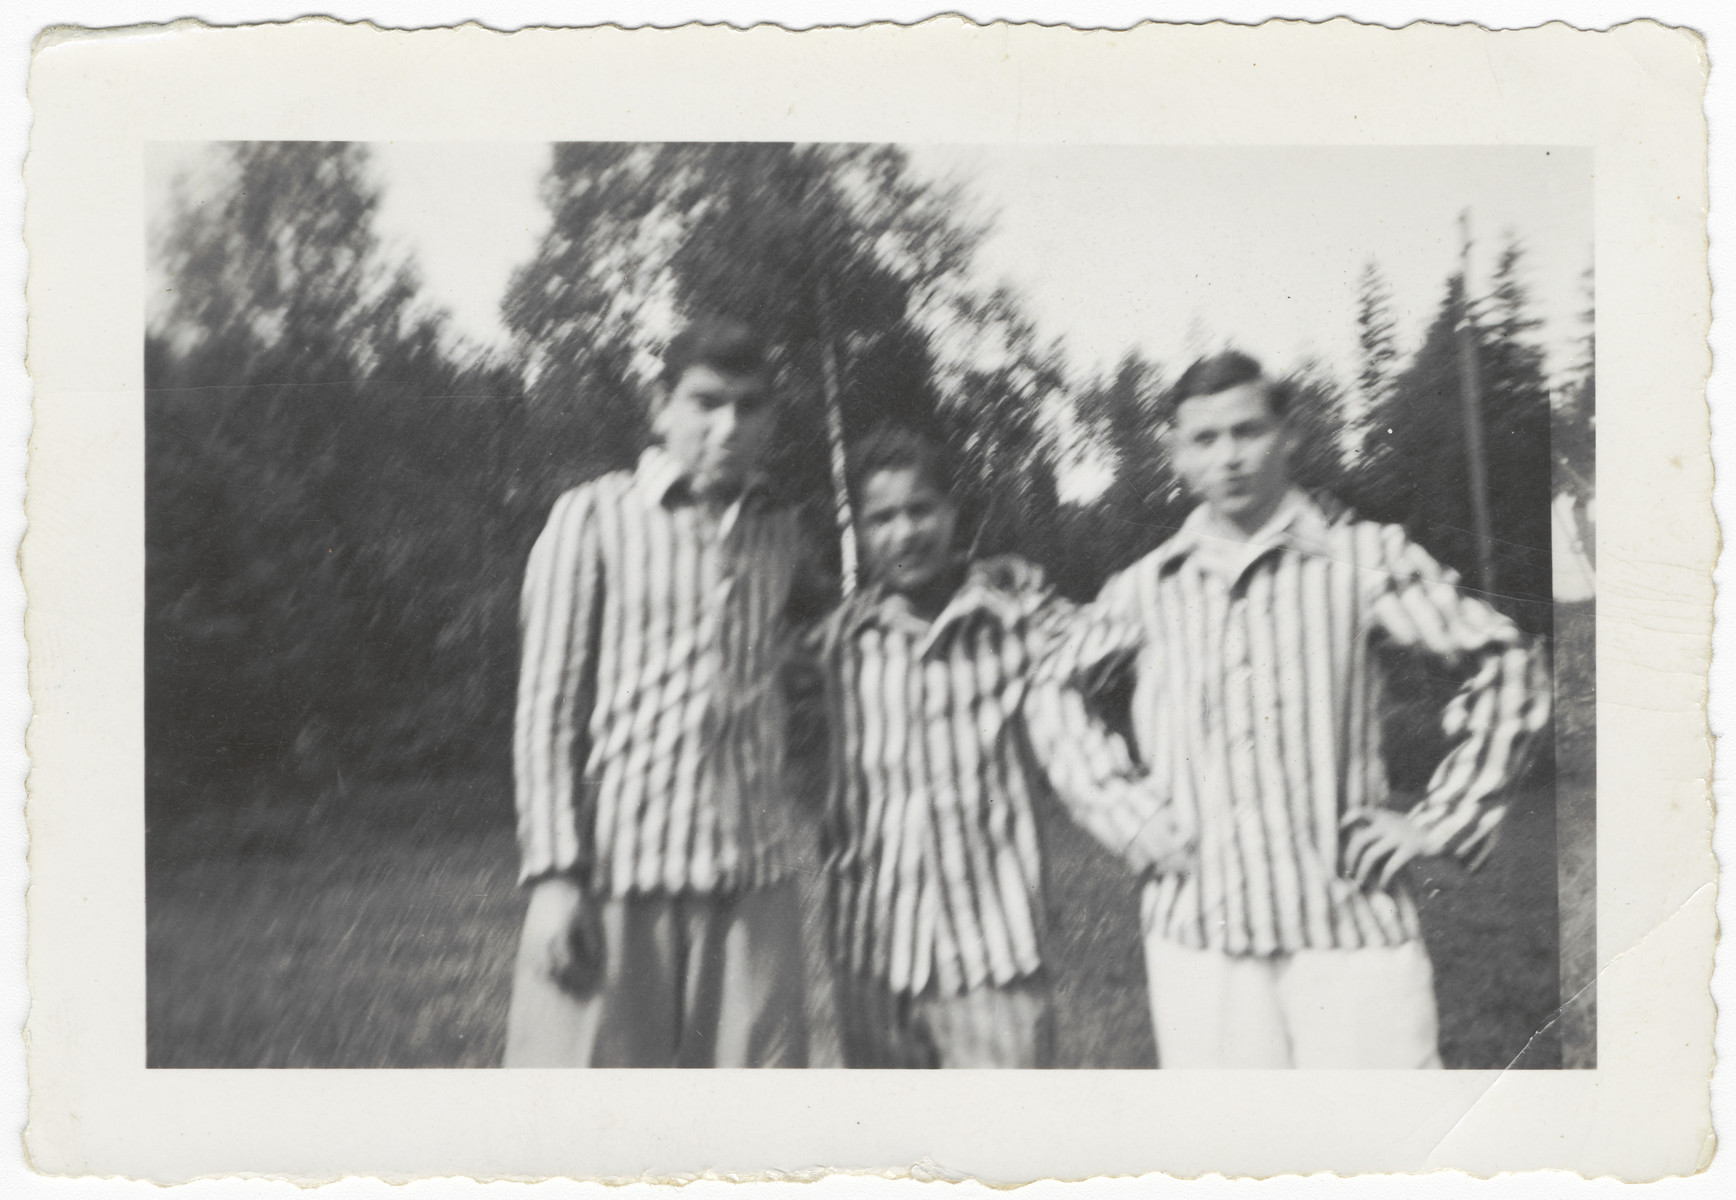 Three young Buchenwald survivors pose in their uniforms after liberation.  Moniek Szmulewicz is pictured in the center.